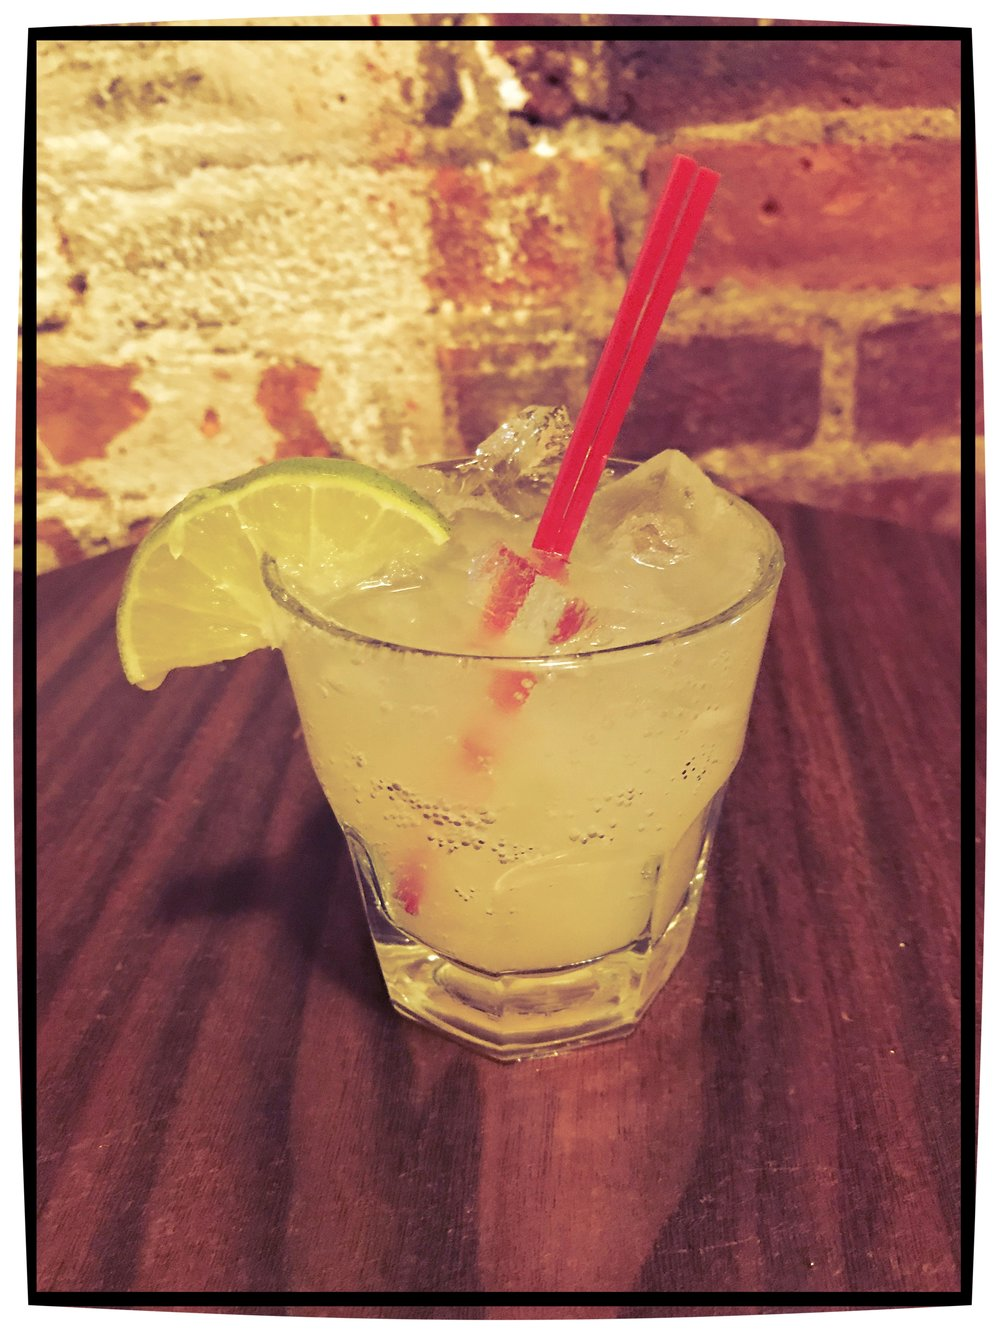 Ralph's Grandma $8 - Breuckelen Glorious Gin, Elderflower Liqueur,Hint of Sour, Dash of Grapefruit, Burst of Soda